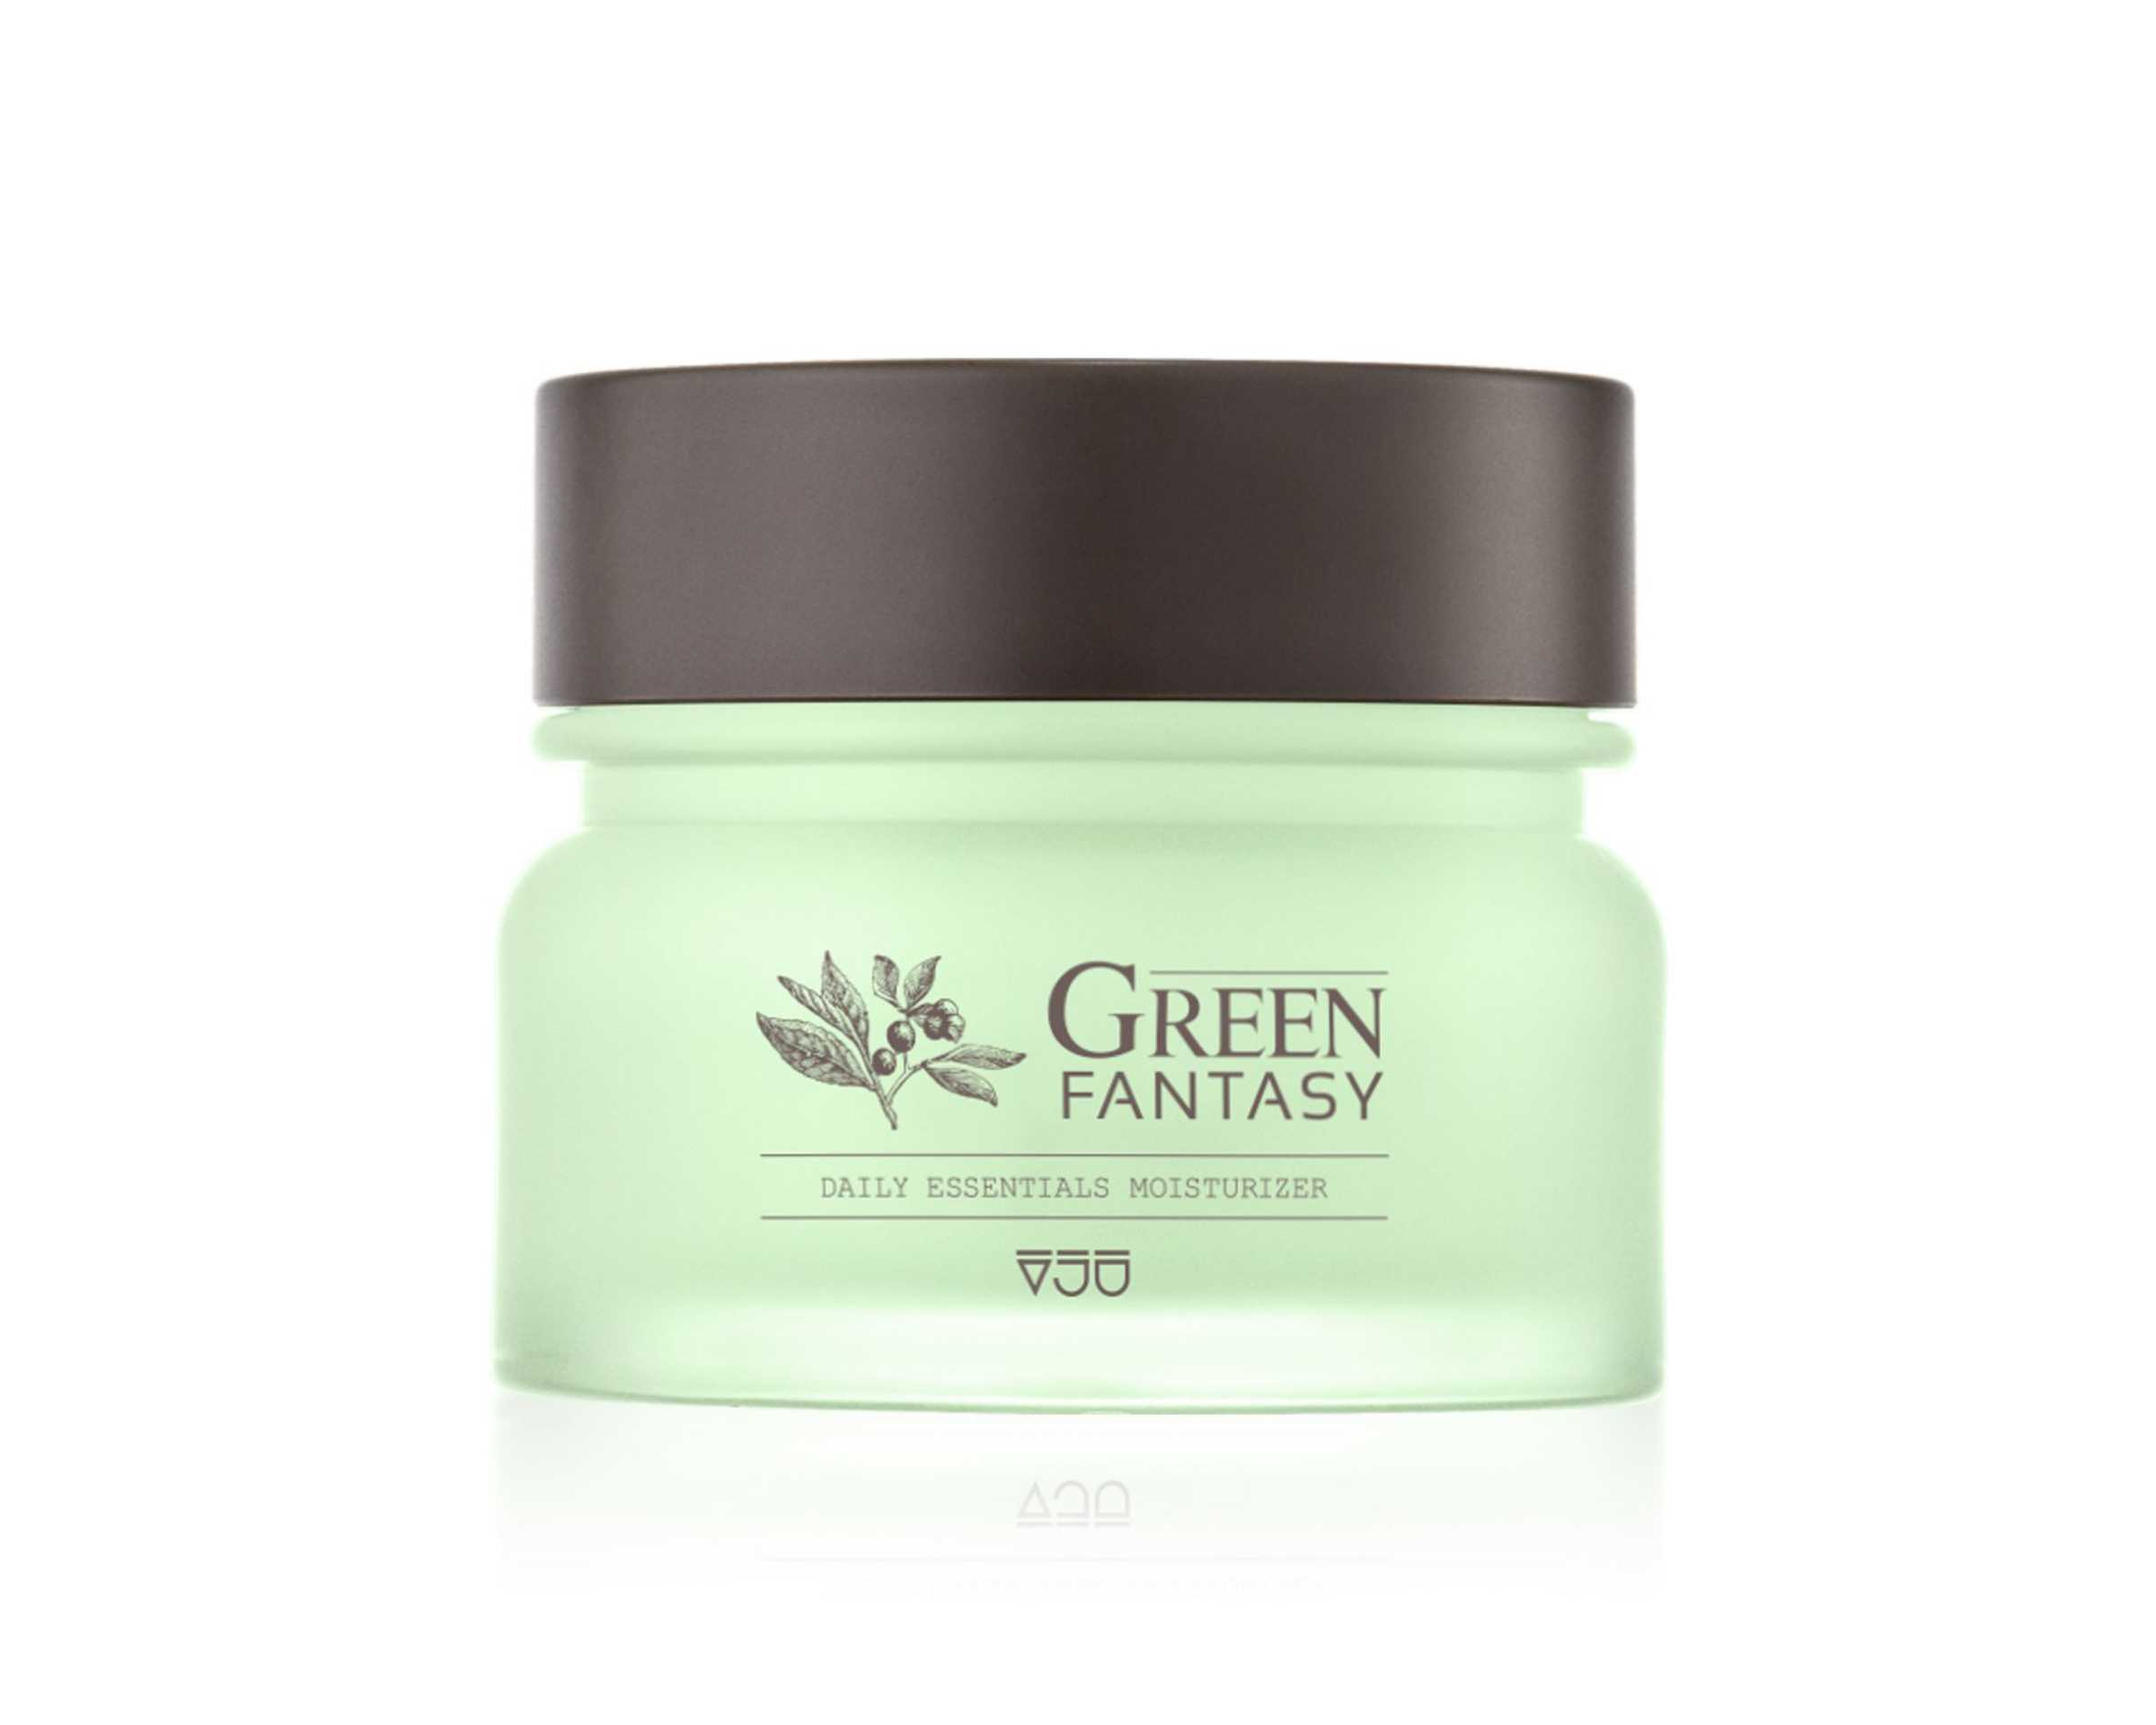 Korean-Products-To-Try-In-2019-VJU-Green-Fantasy-Facial-Moisturizer-Day-And-Night-Cream1